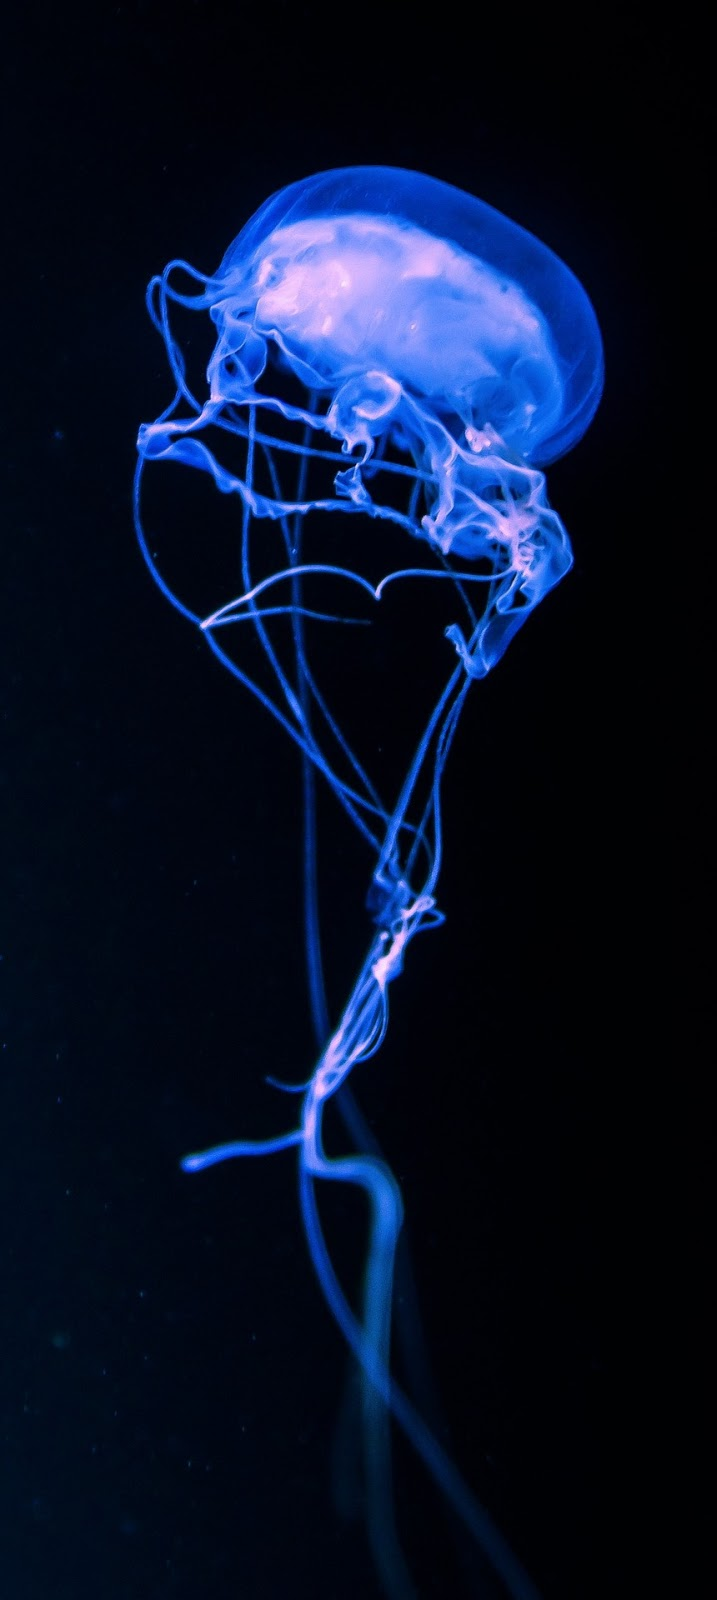 A jellyfish with an artistry shape.